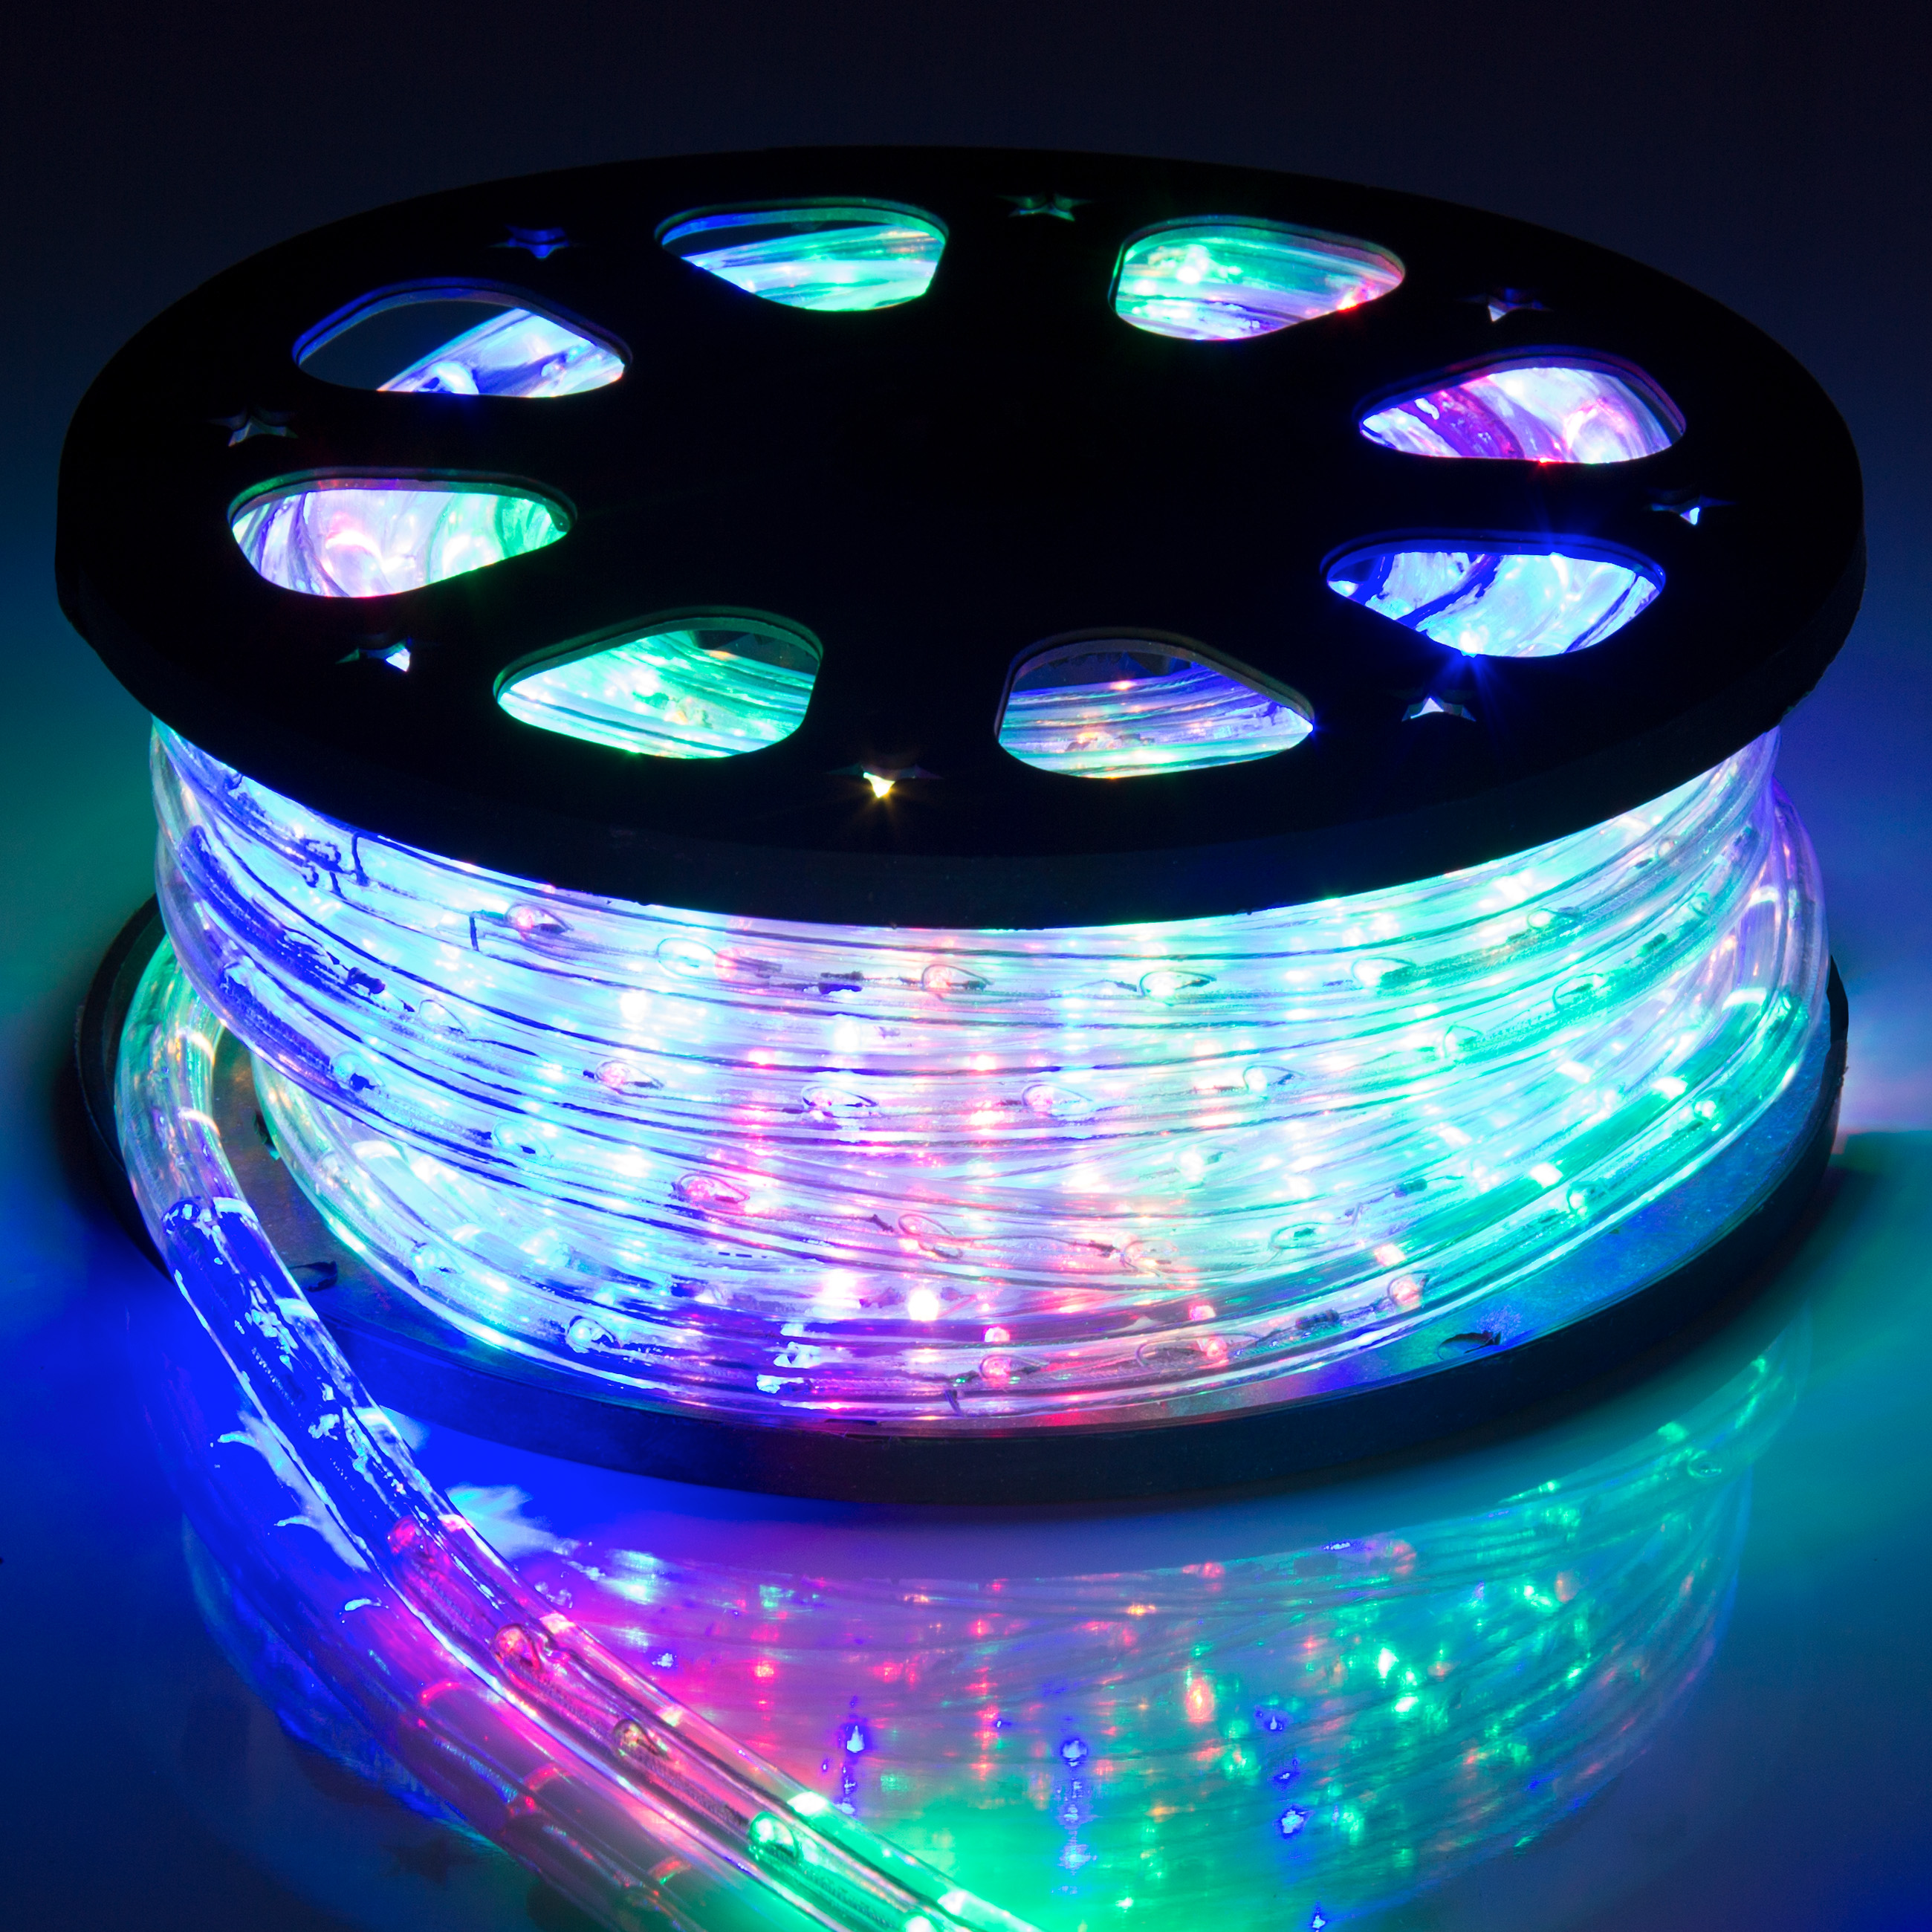 Best Choice Products 50ft LED Plugin Rope Lights for Indoor, Outdoor, Decorative Lighting w/ Waterproof Tubing - Rainbow